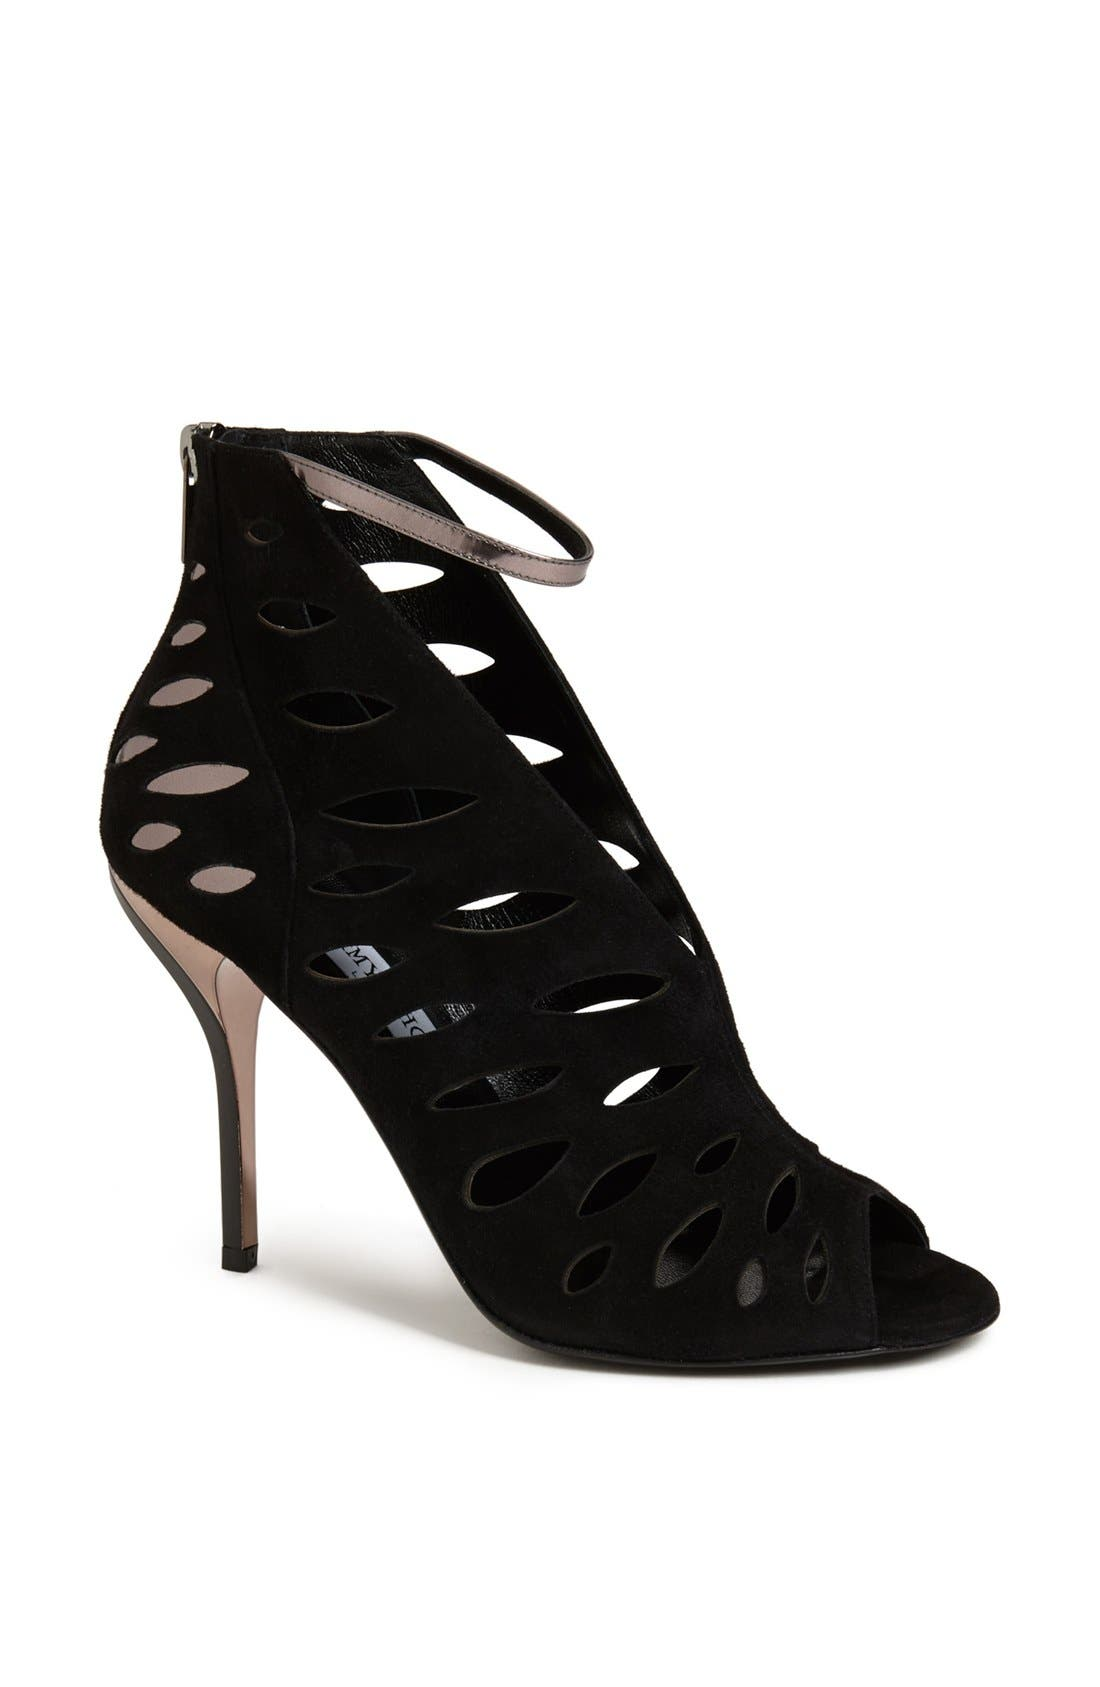 Alternate Image 1 Selected - Jimmy Choo 'Tamera' Cutout Sandal